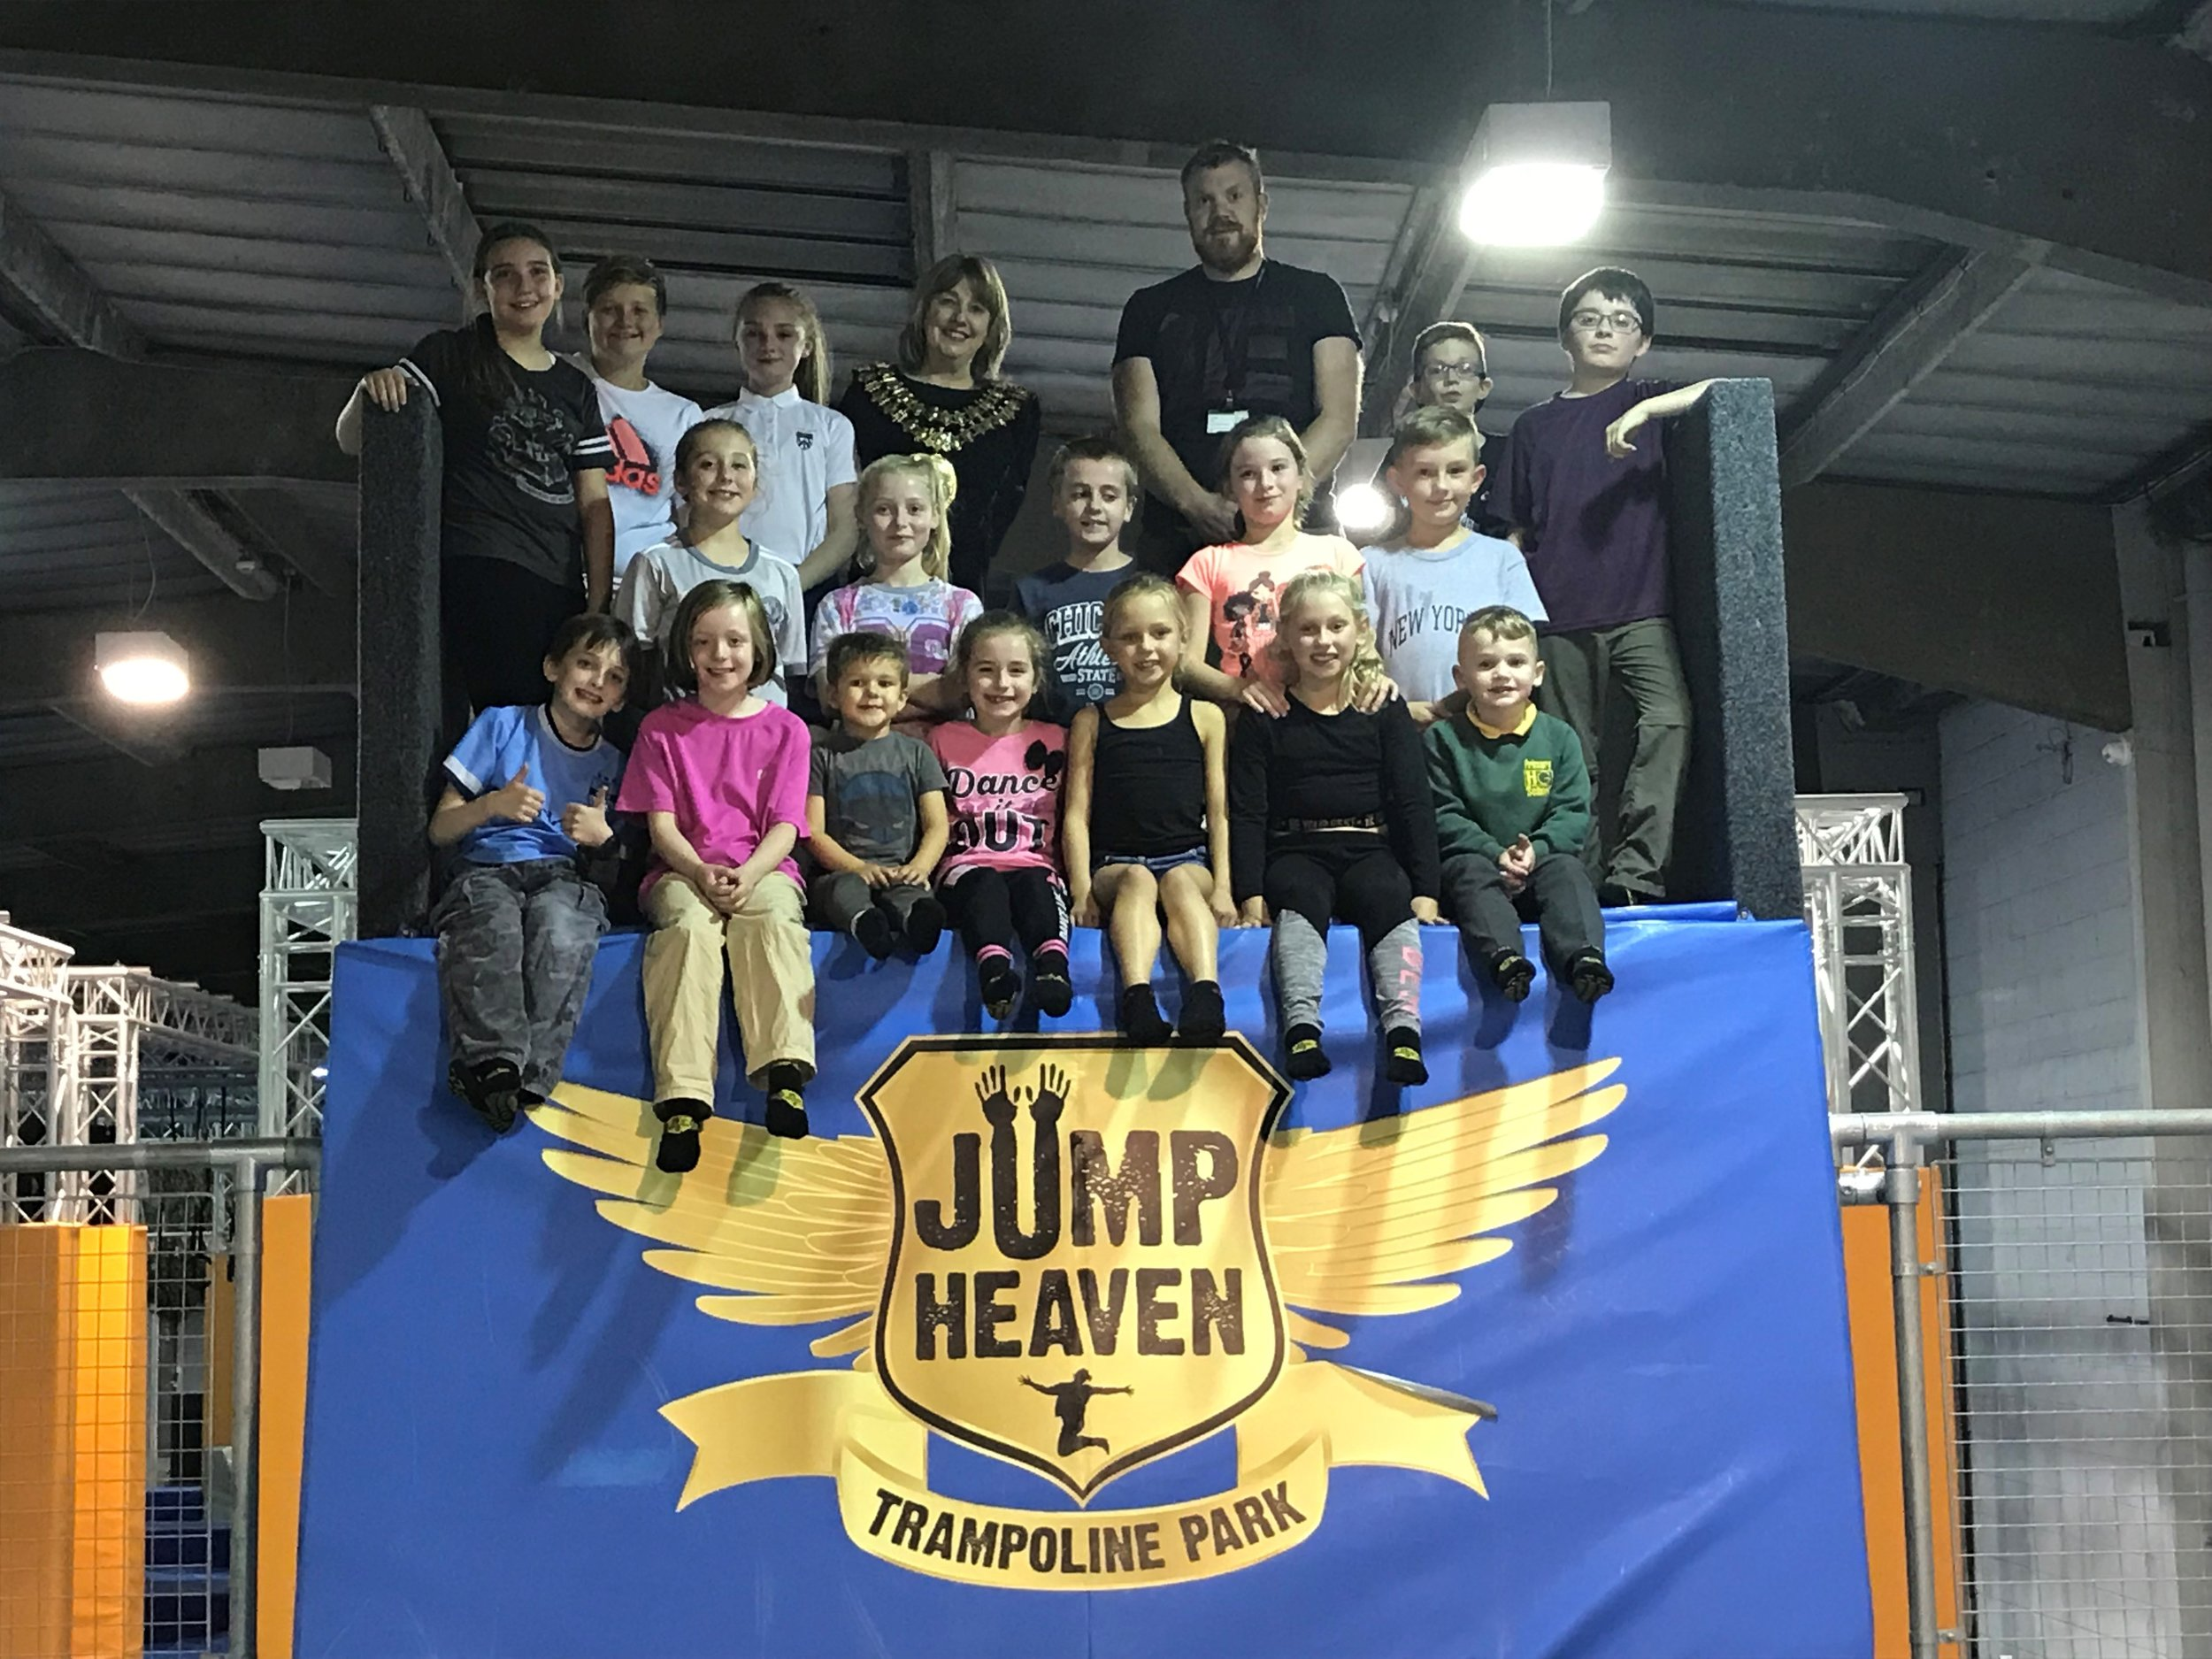 sons and daughters jump heaven.jpg